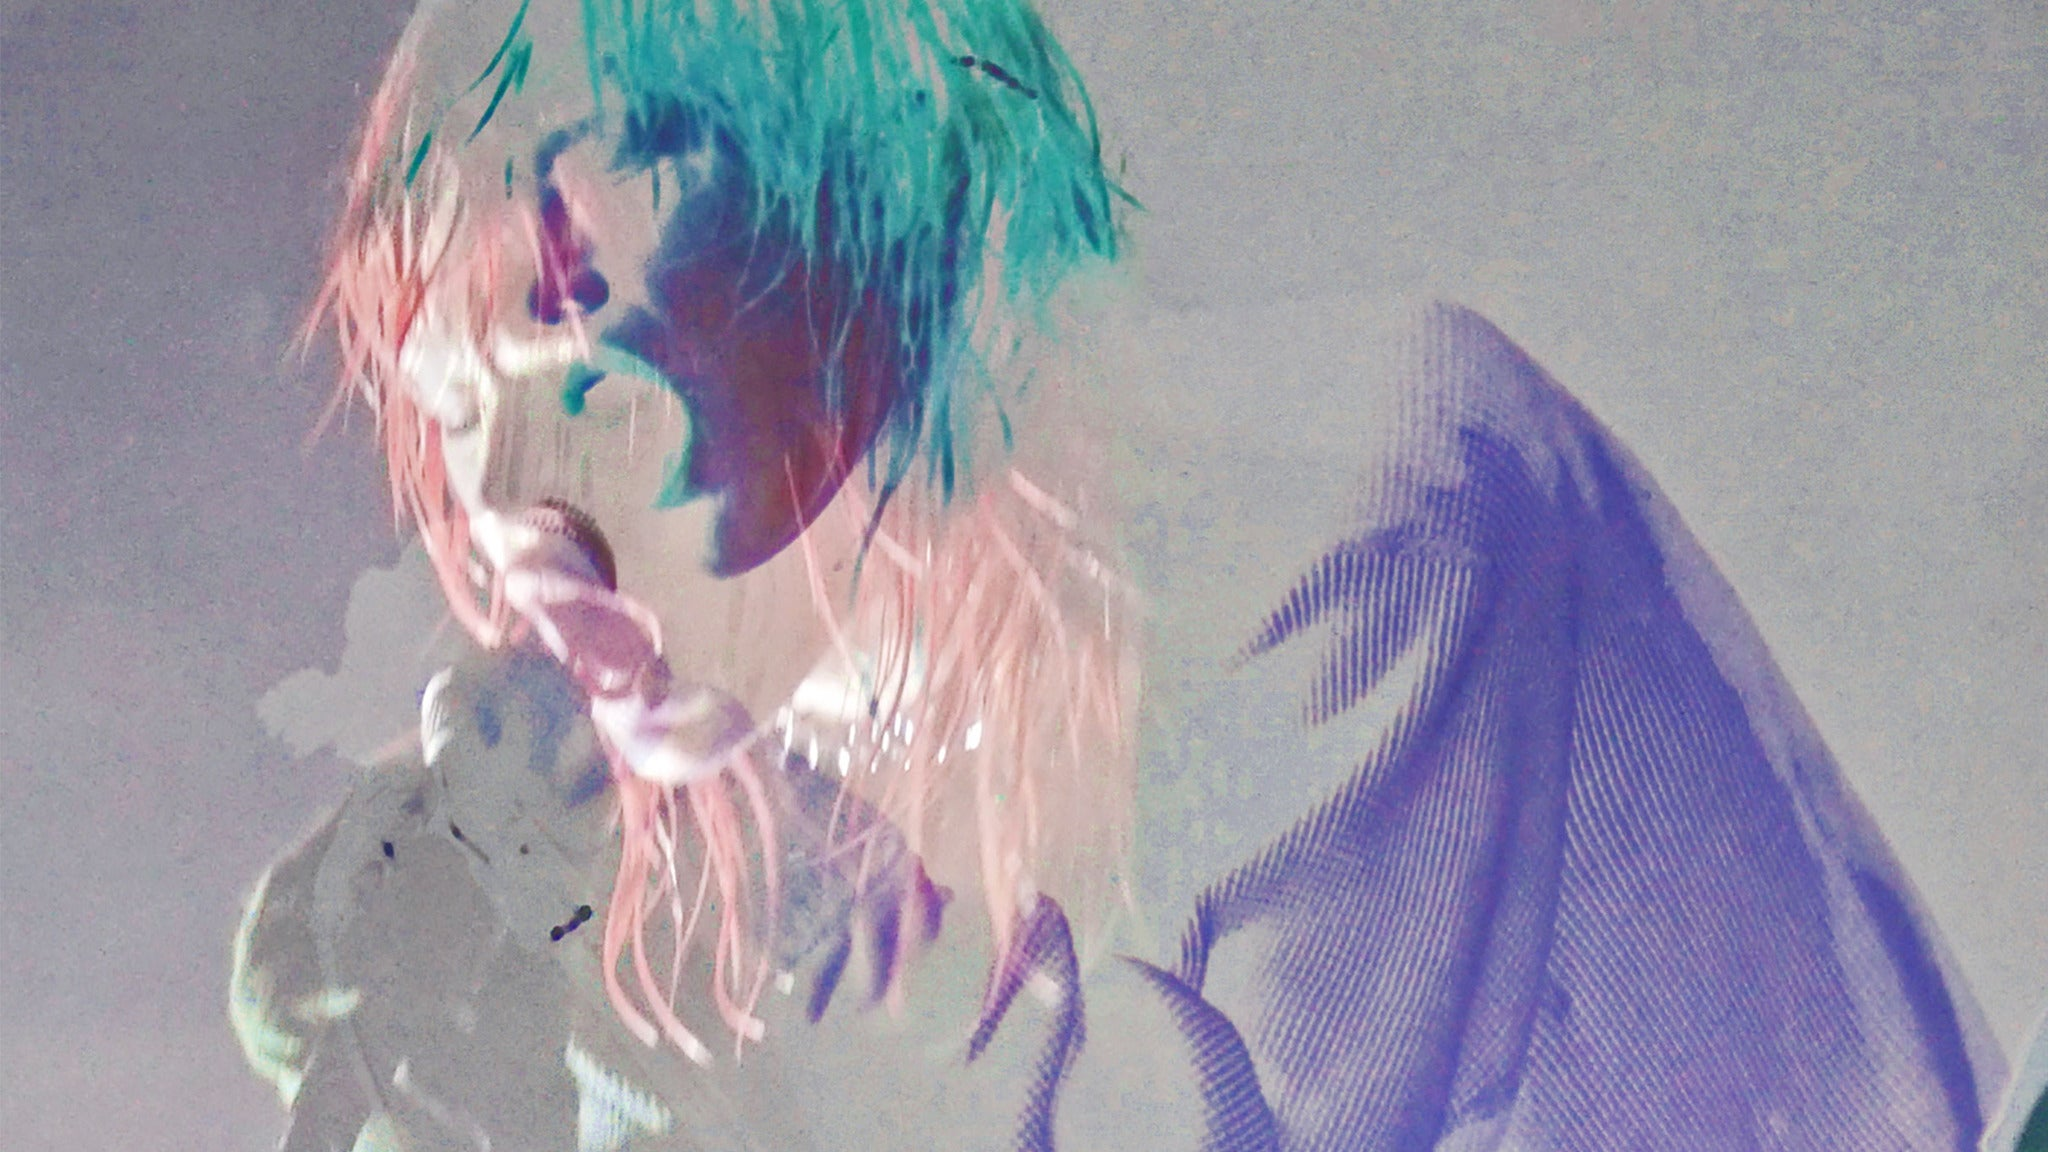 Crystal Castles with Farrows at Observatory North Park - San Diego, CA 92104